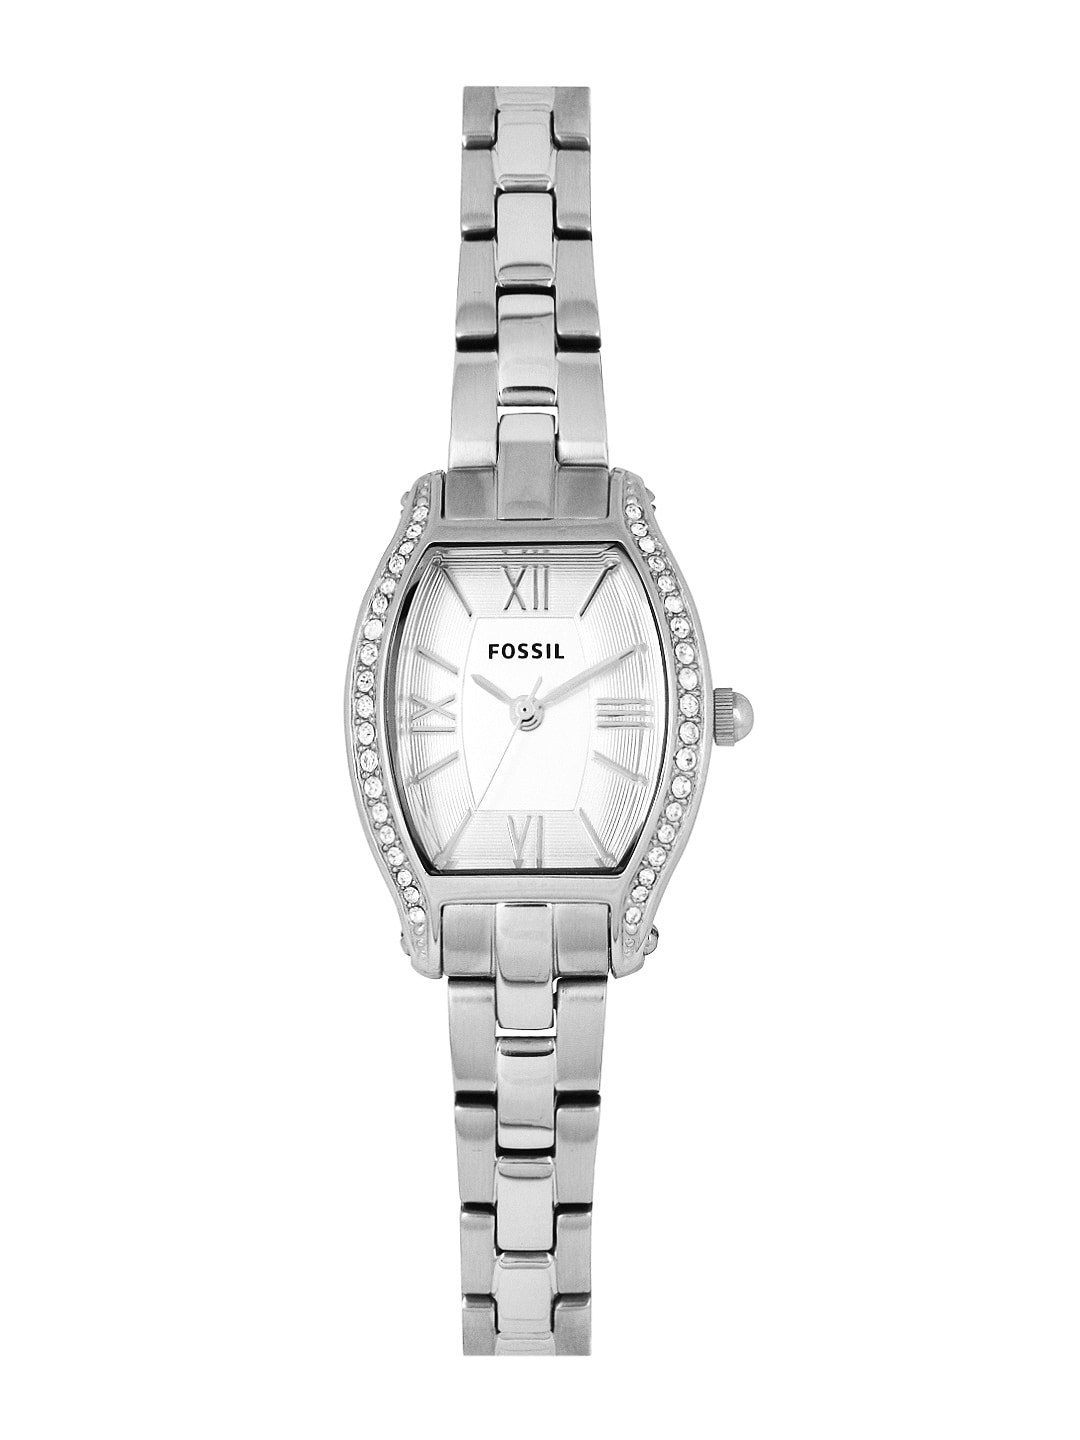 Fossil Fossil Women Silver-Toned Dial Watch ES3285I